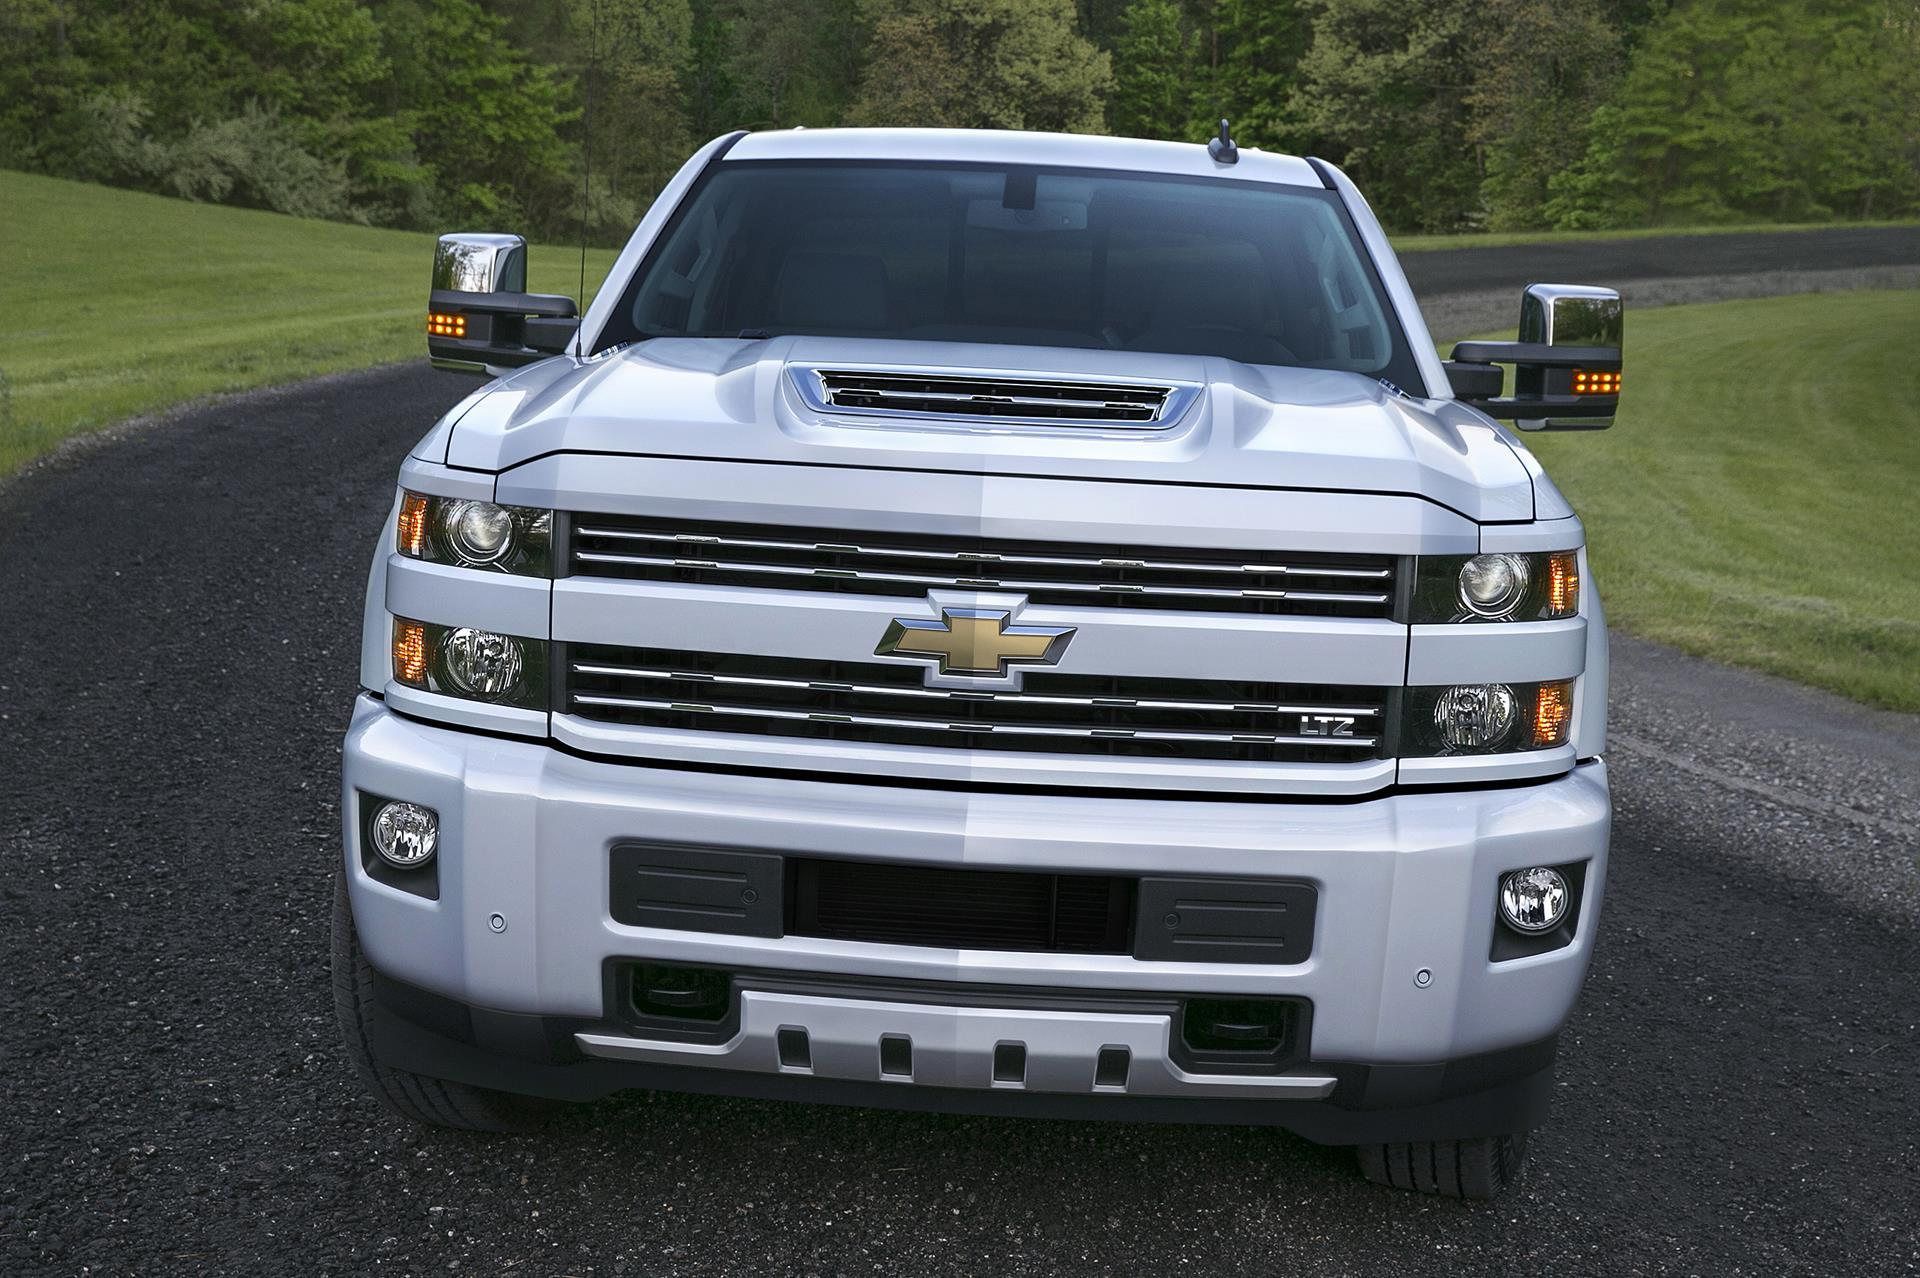 2017 chevrolet silverado. Black Bedroom Furniture Sets. Home Design Ideas